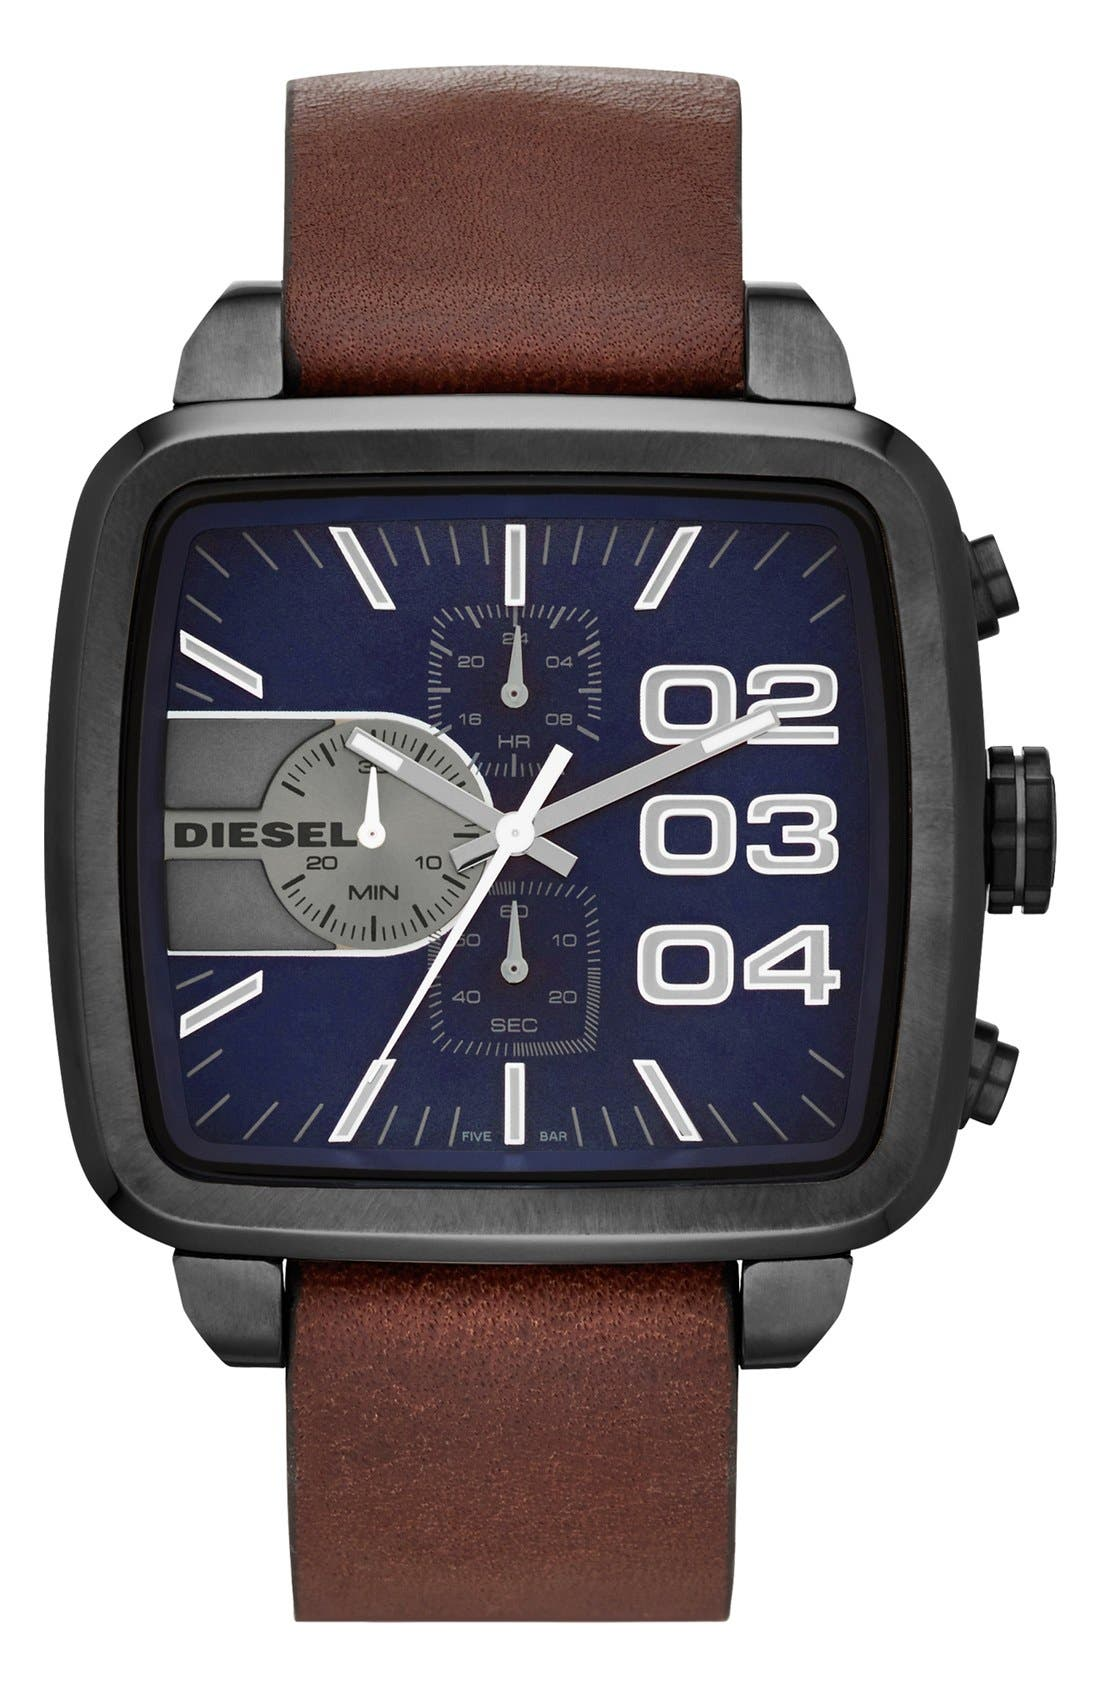 Main Image - DIESEL® 'Square Franchise' Leather Strap Watch, 57mm x 48mm